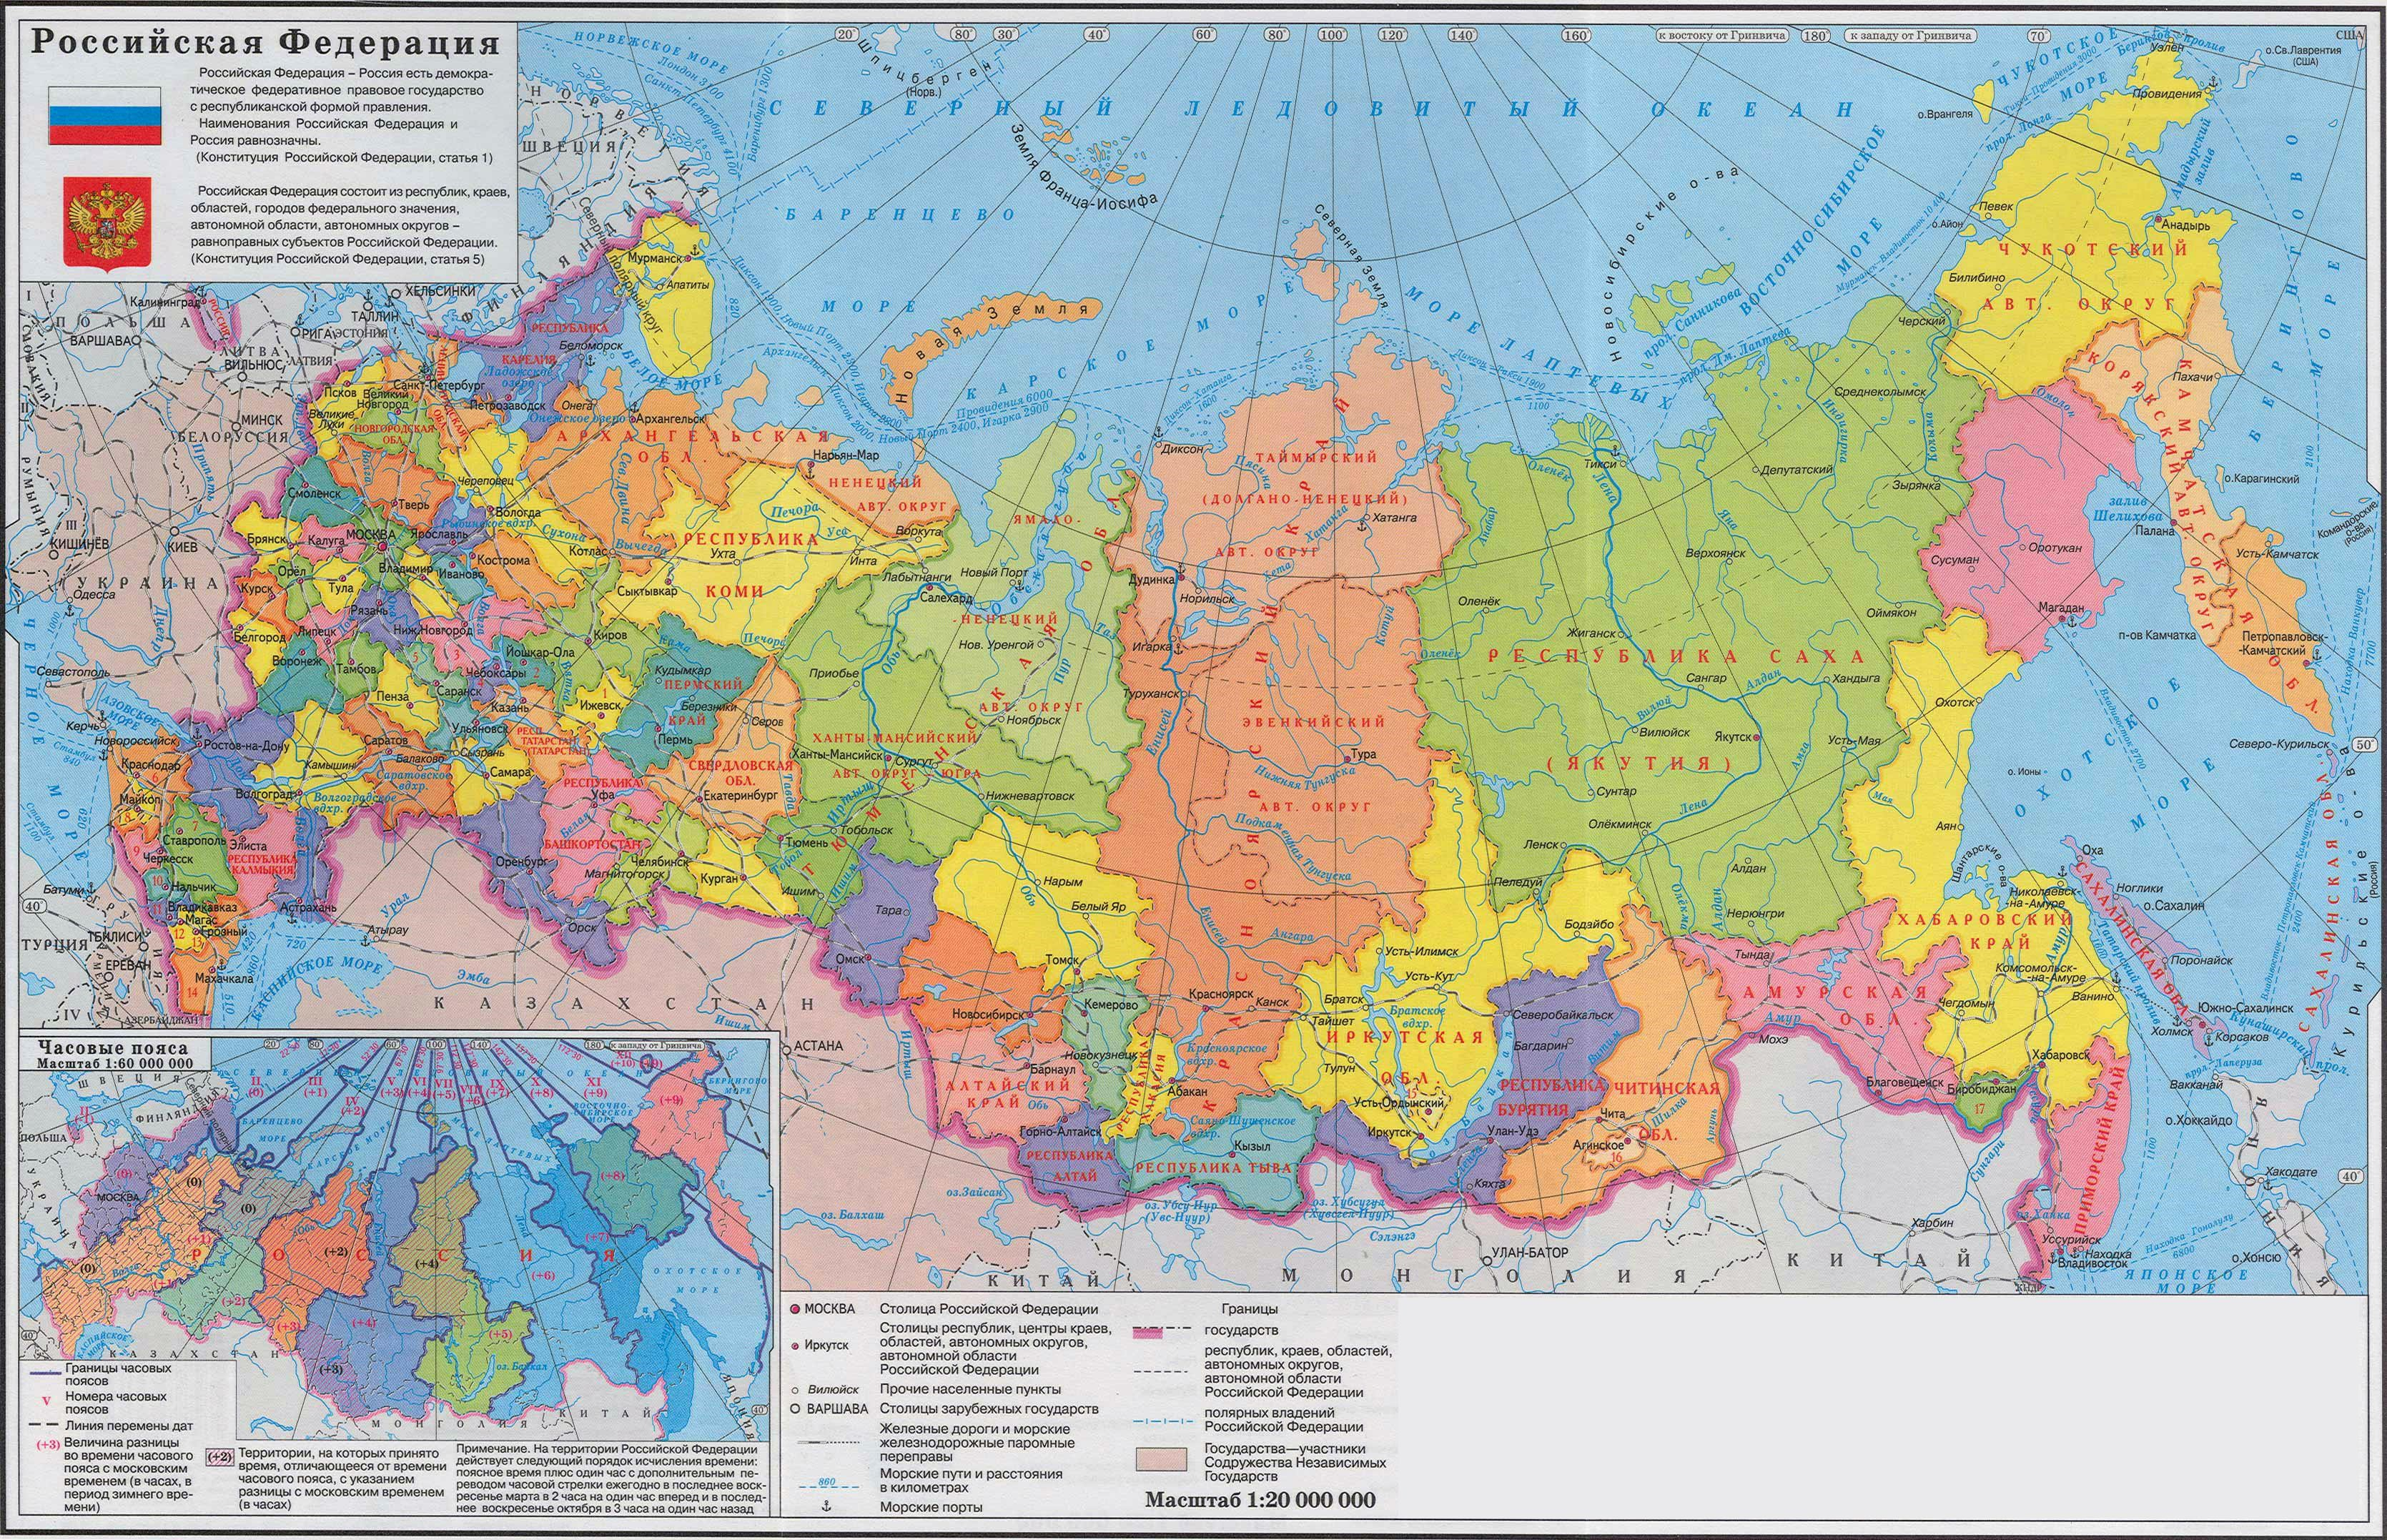 large-political-and-administrative-map-of-russia-with-cities